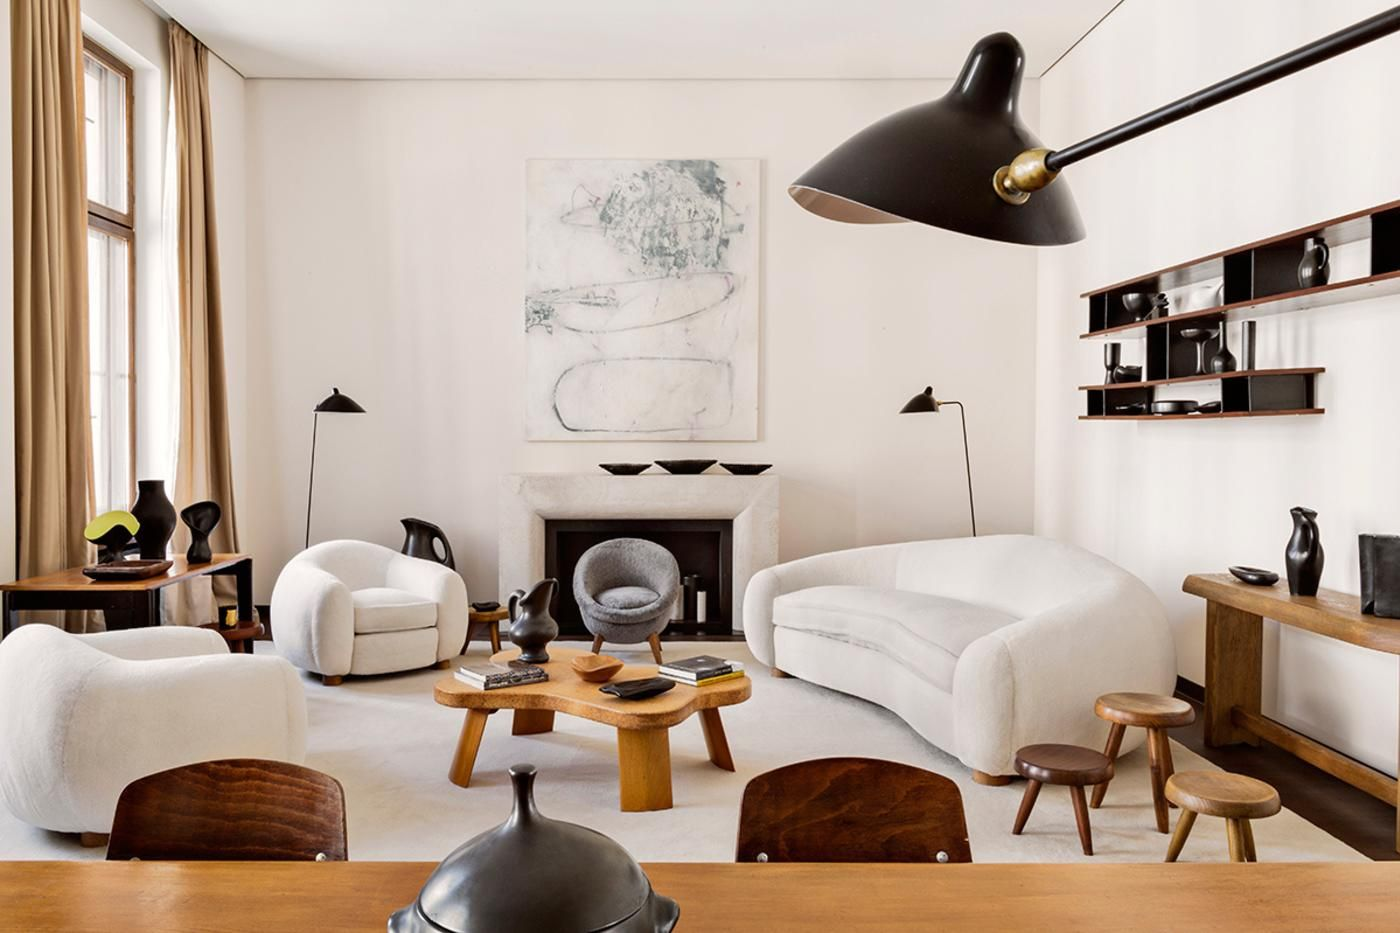 This Mid-Centuty Focused Bachelor Pad In Berlin Is All Kinds Of Cool.